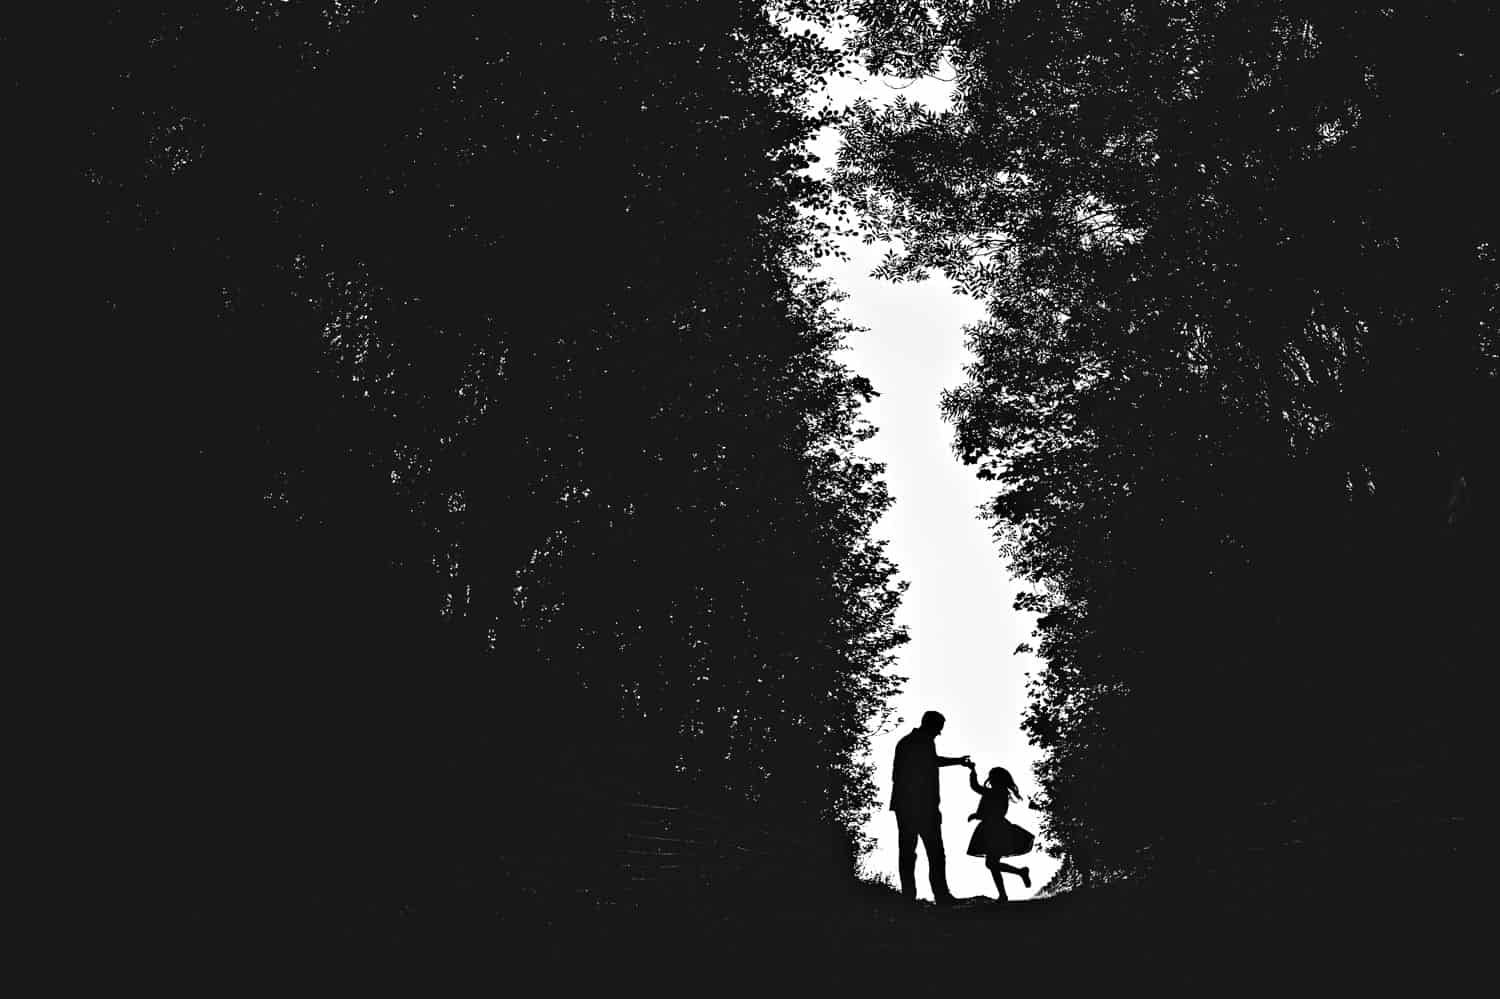 Silhouette of a father twirling his daughter in a sliver of light between large bushes.